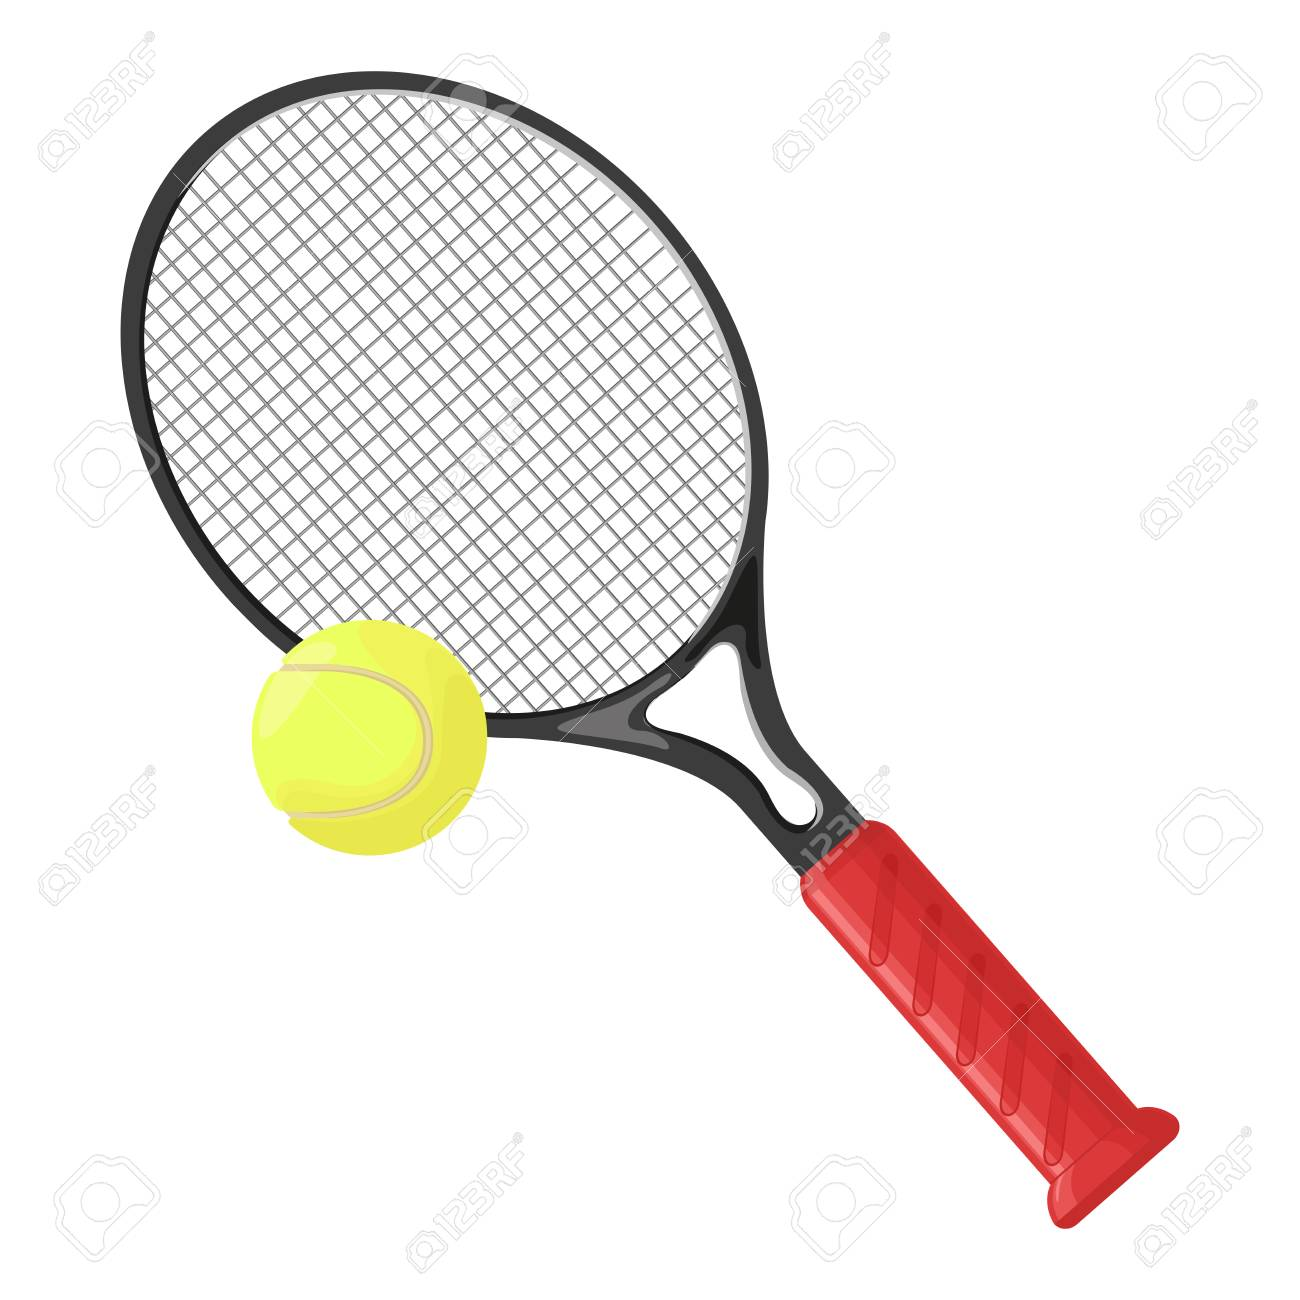 Tennis Racket And Tennis Ball Isolated On White Background Vector